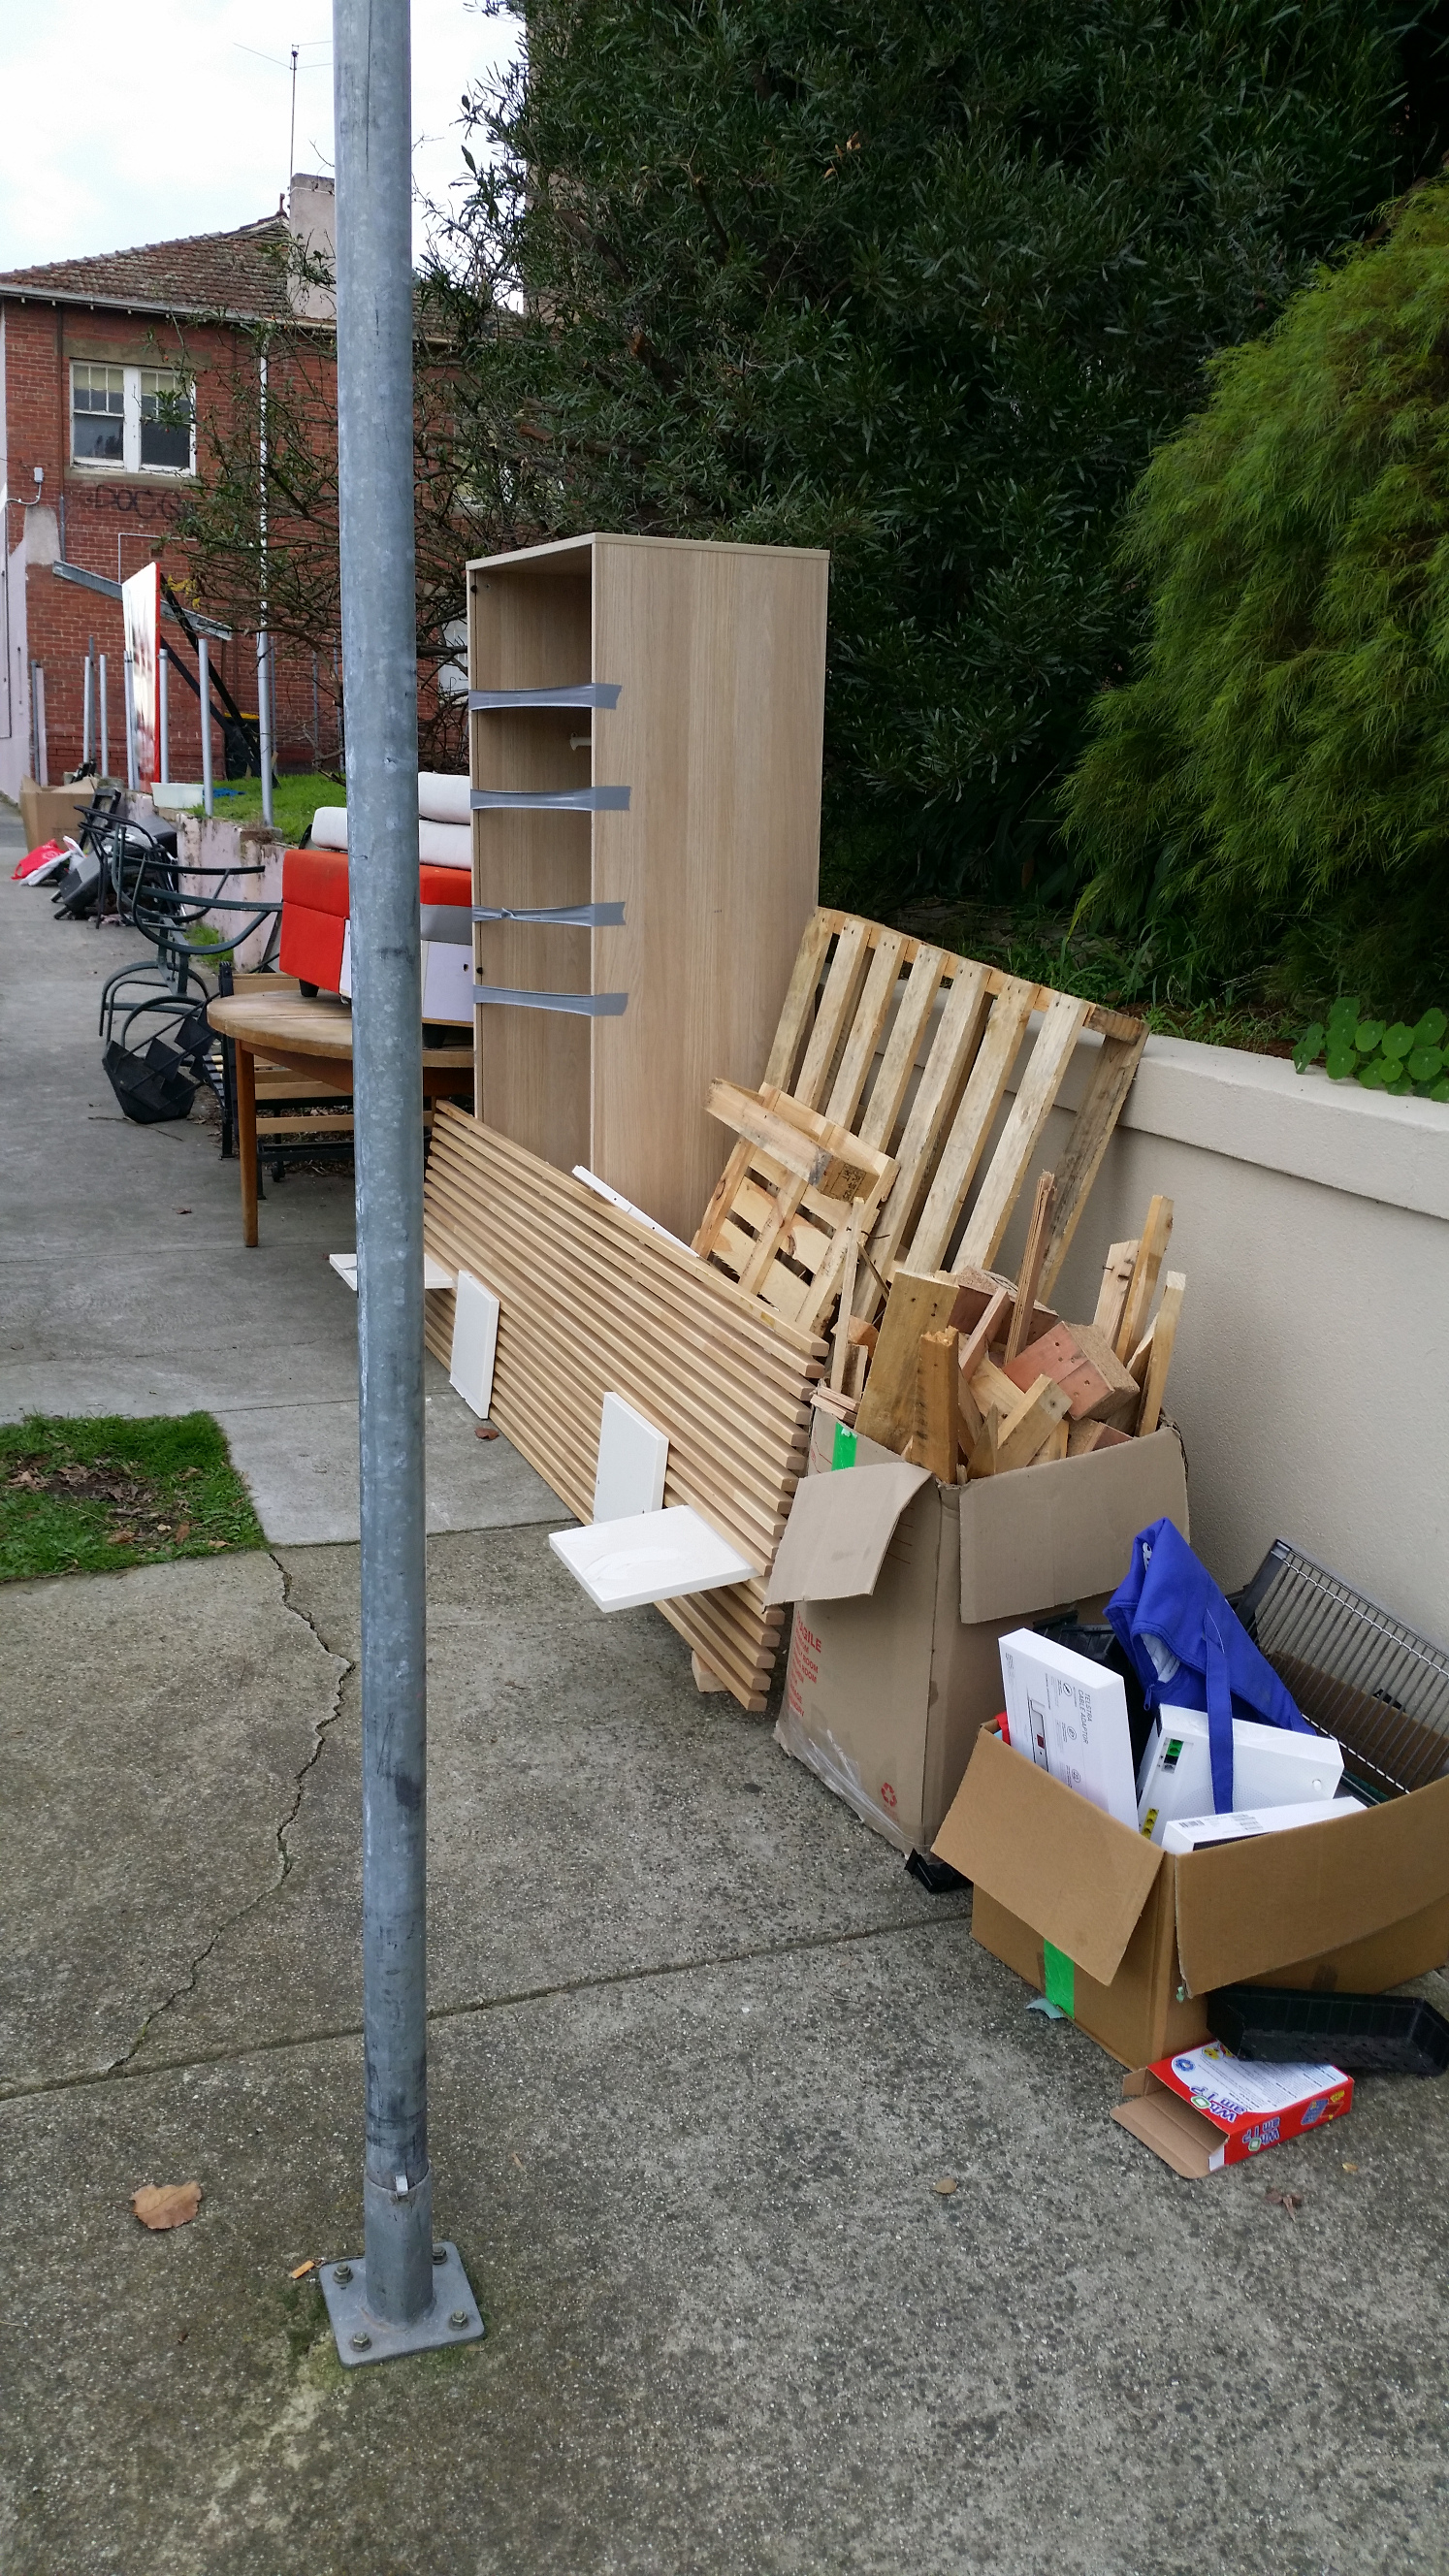 Furniture and miscellaneous trash curb side in Melbourne 2021